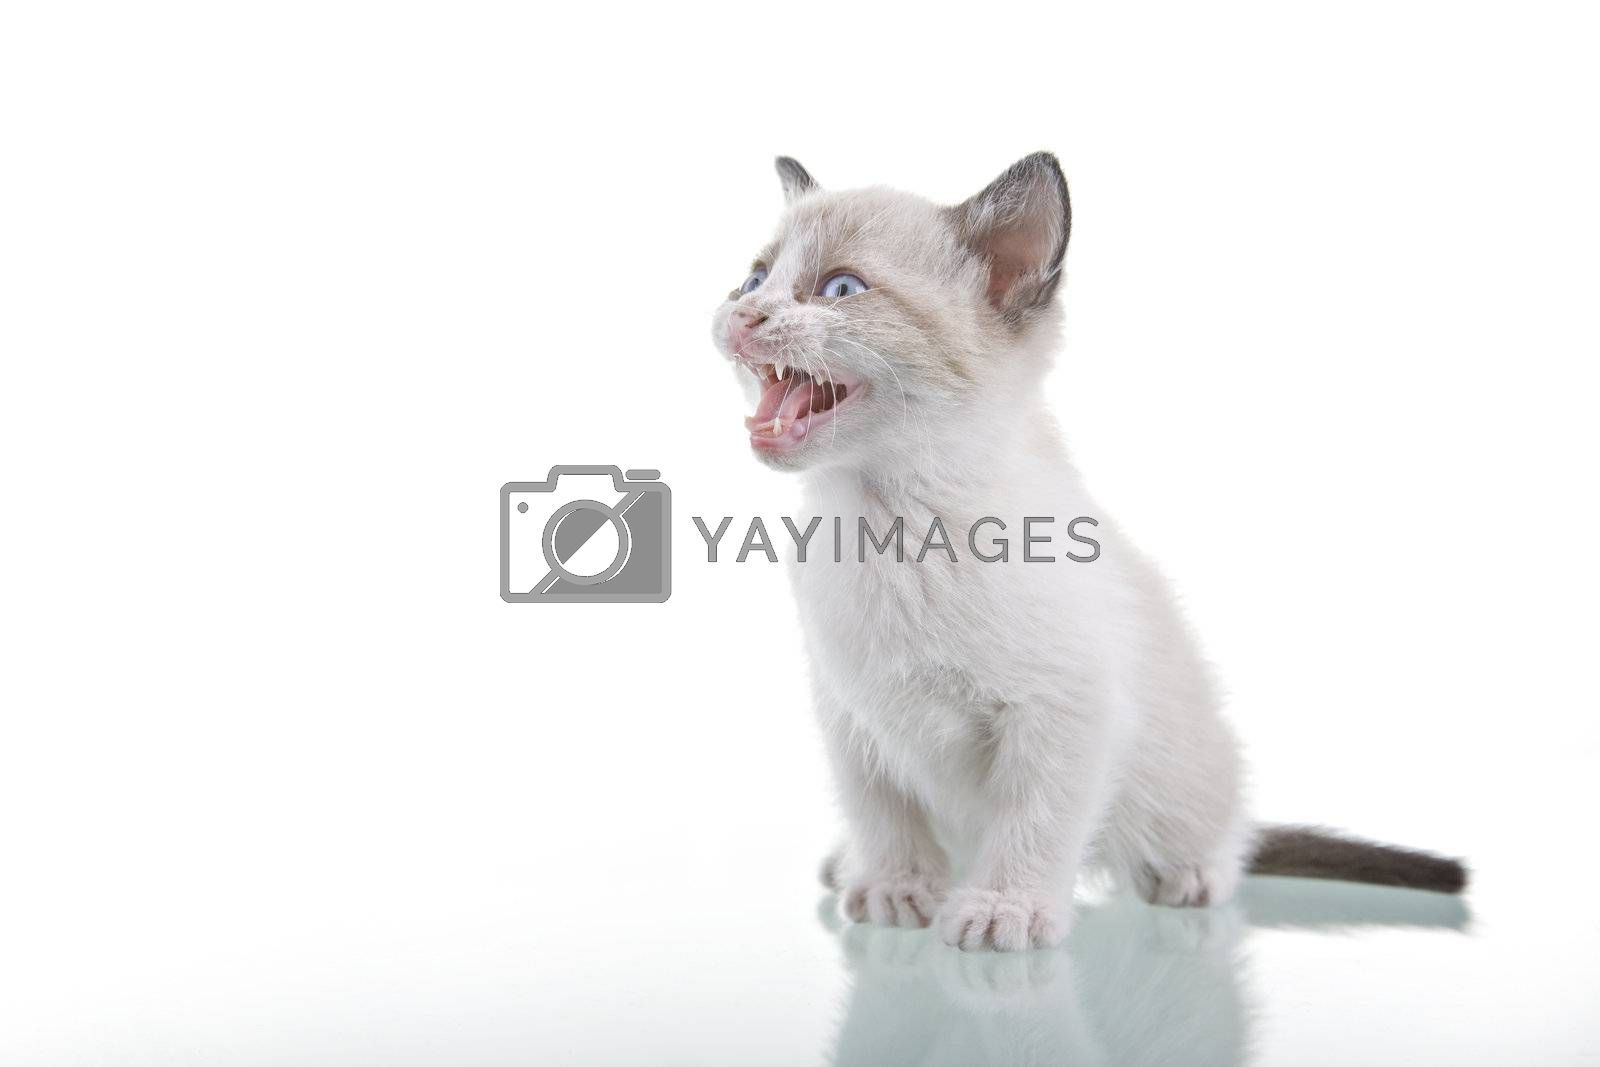 Adorable baby kitten with cute ferocious look isolated on white background.